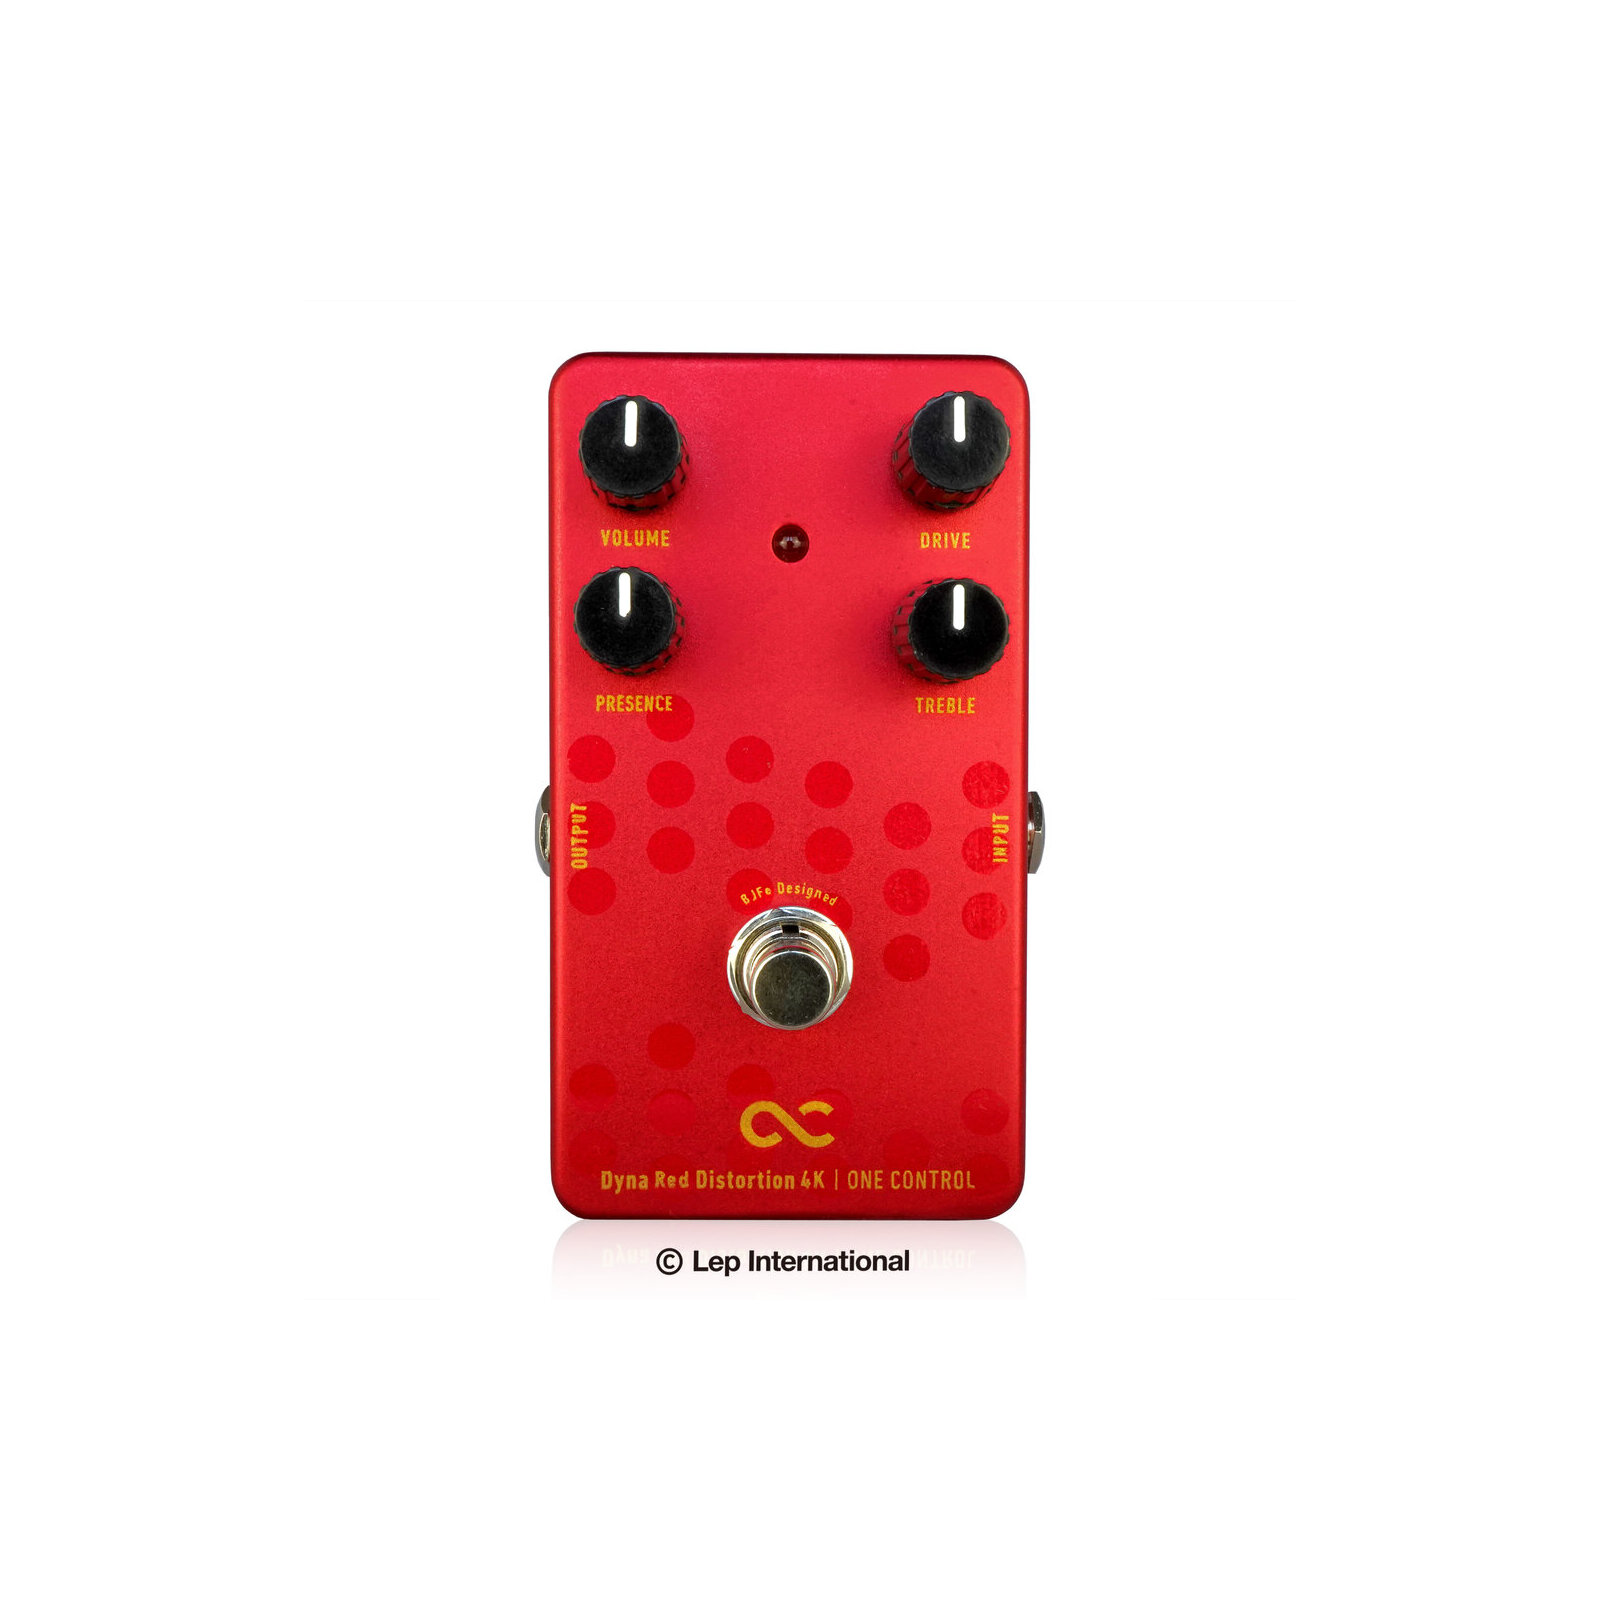 ONE CONTROL BJFE DYNA RED DISTORTION 4K PEDAL